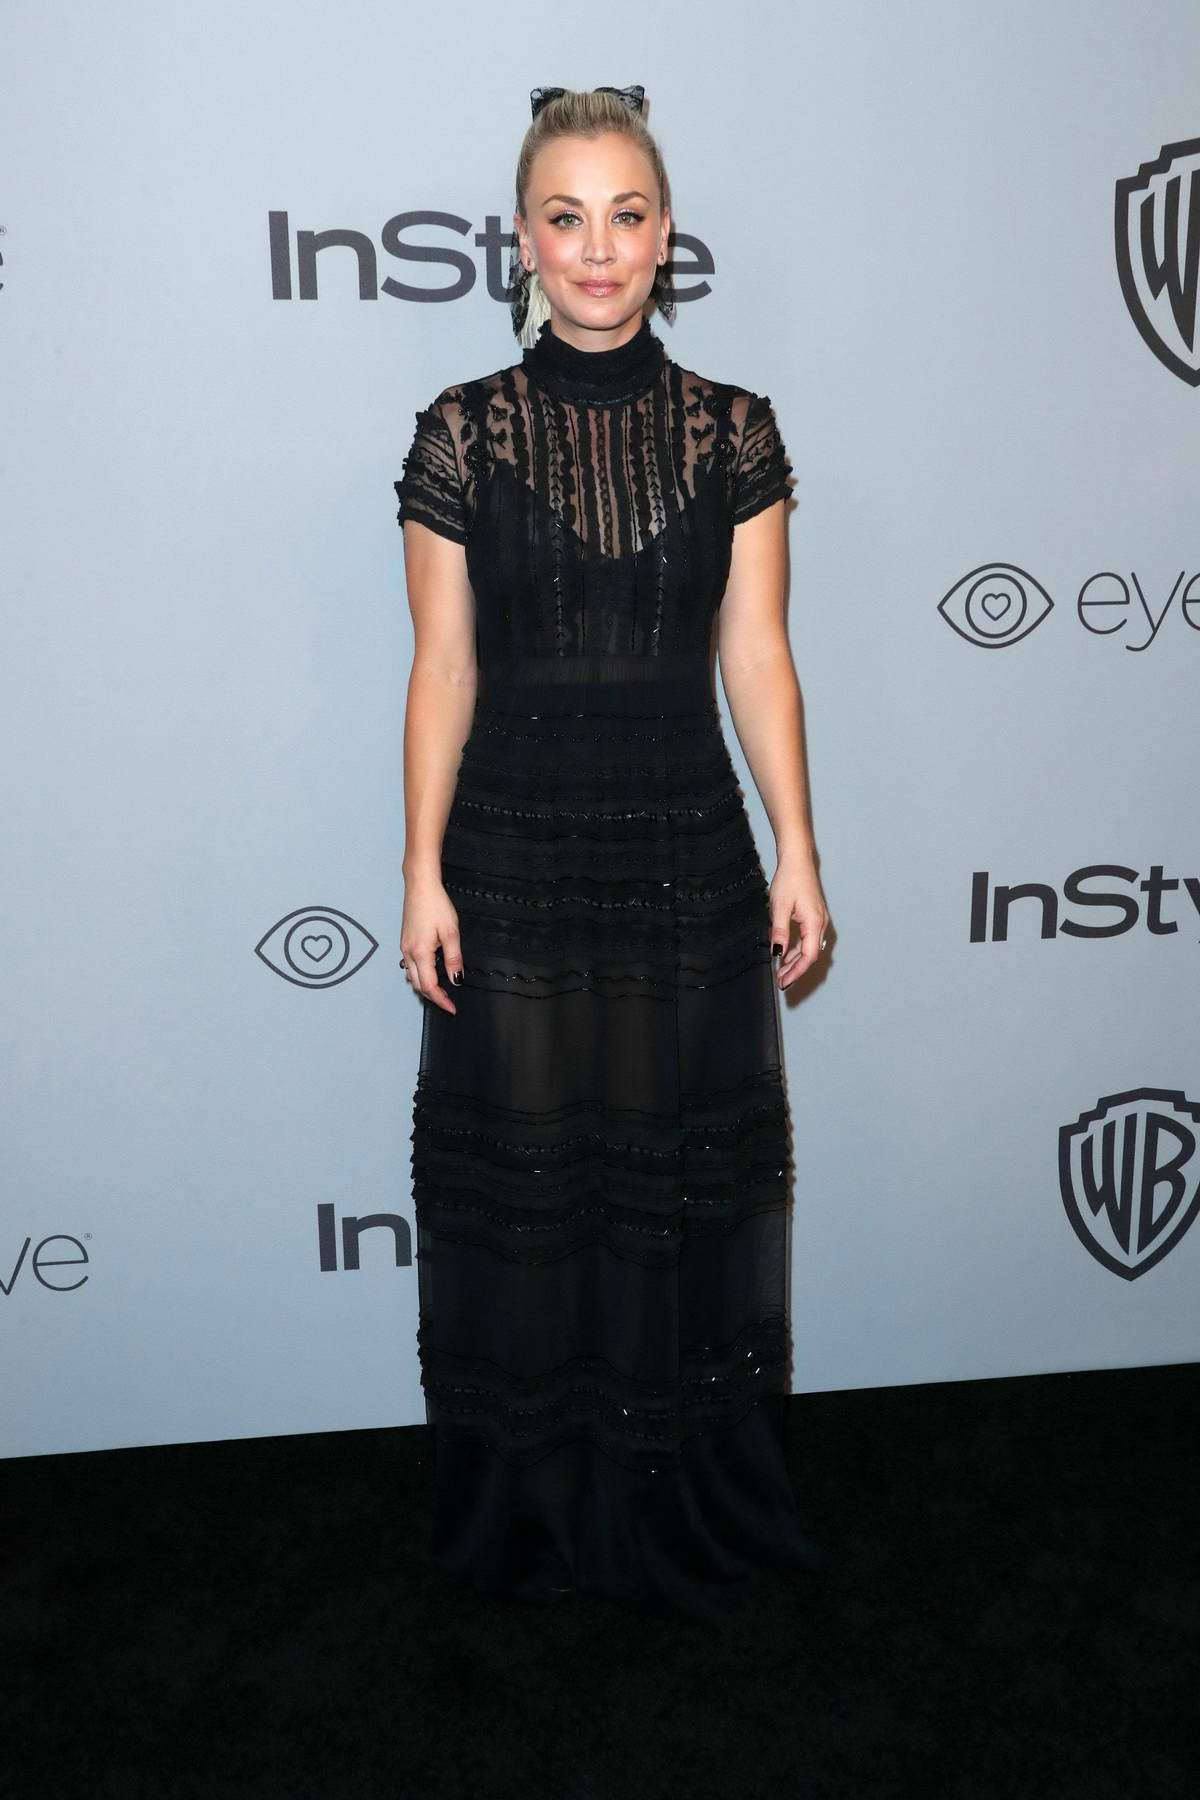 Kaley Cuoco at InStyle & Warner Bros Golden Globes after party in Los Angeles